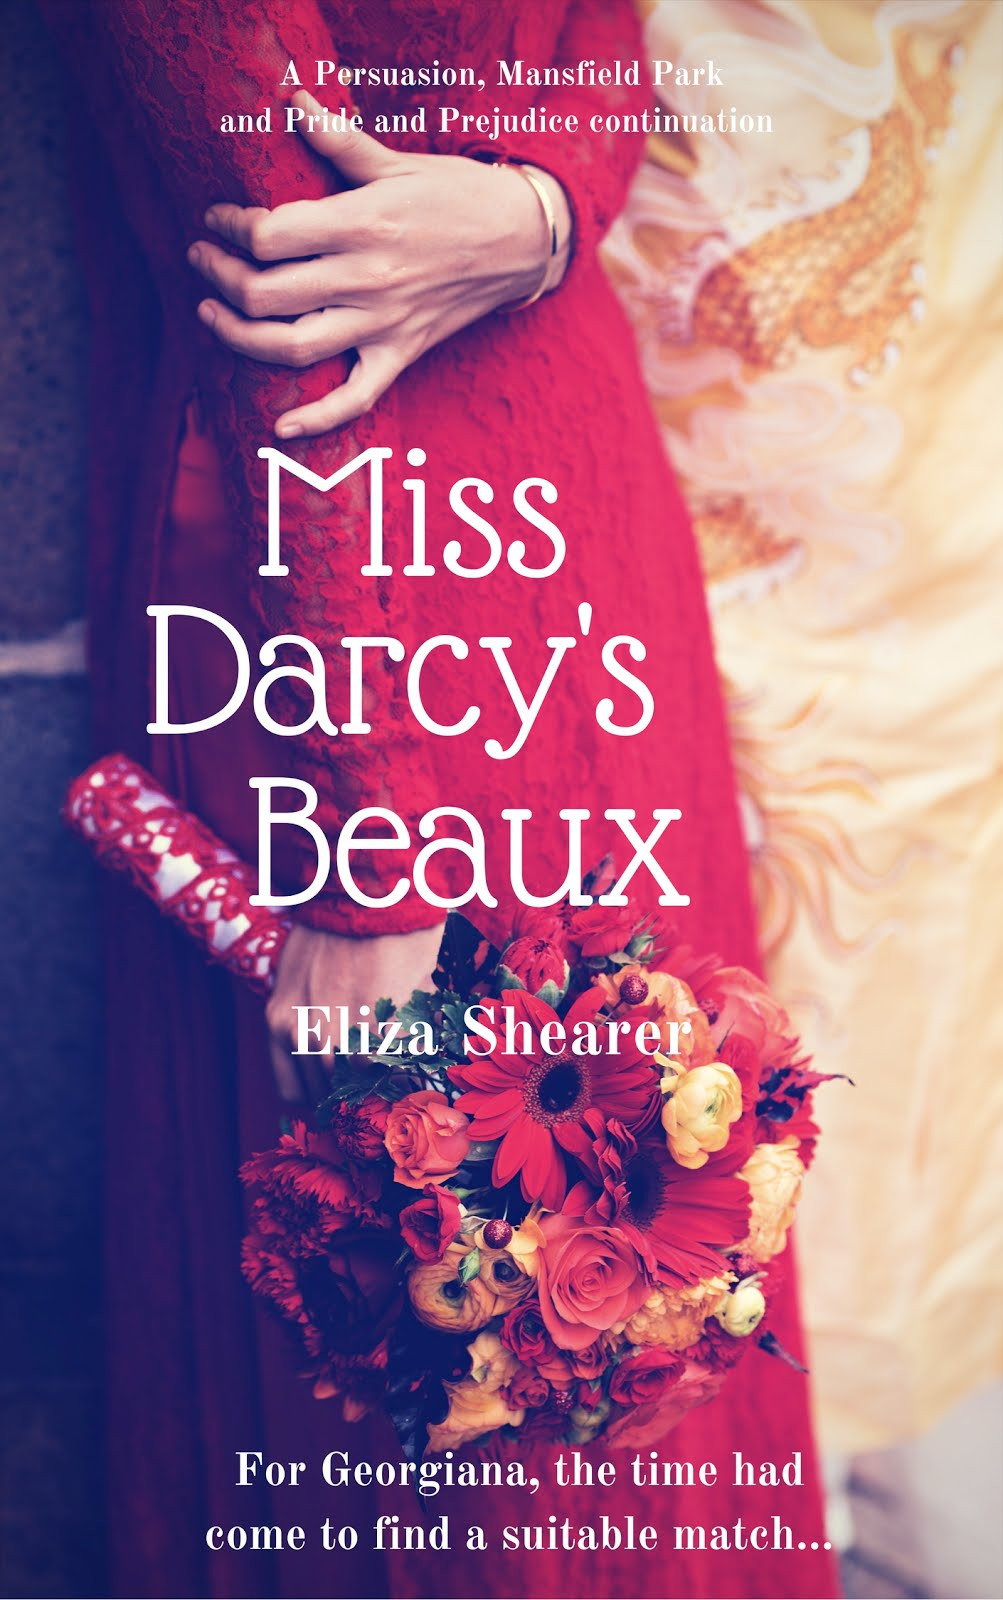 Miss Darcy's Beaux